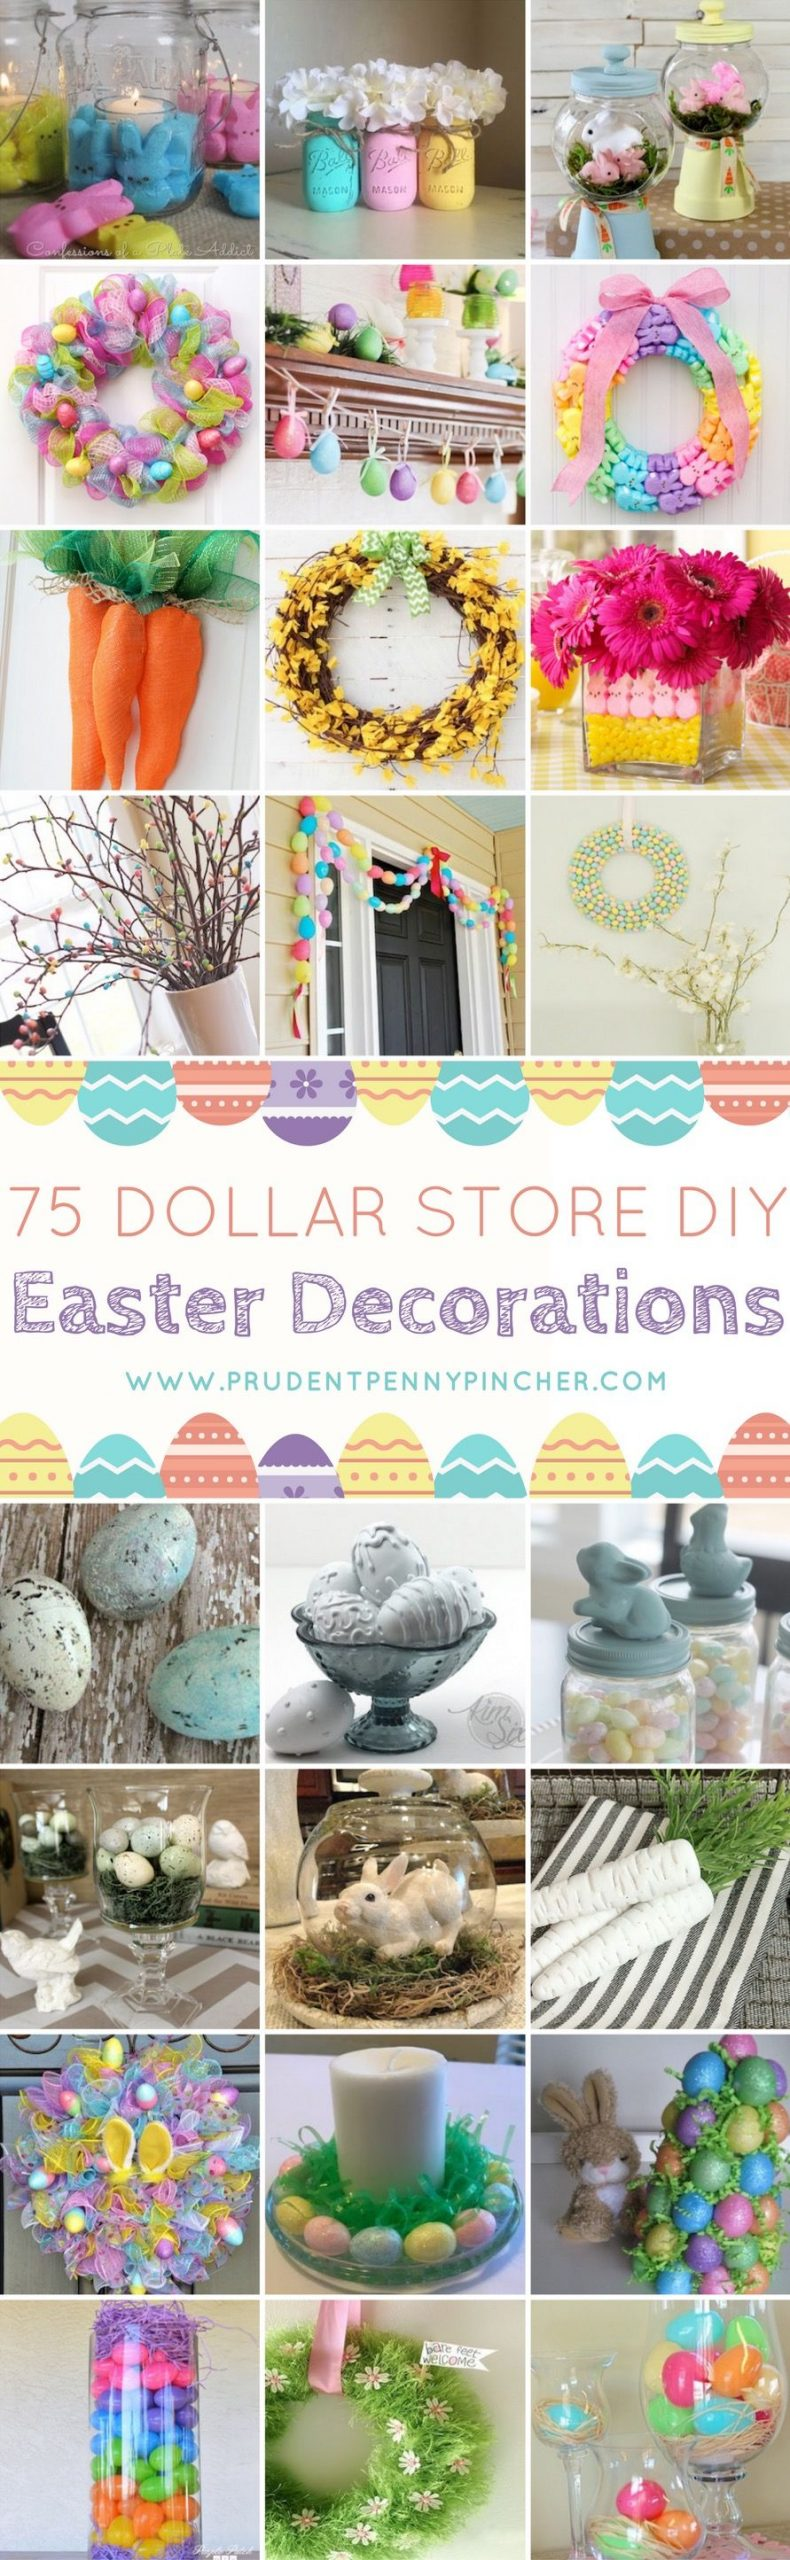 Dollar General Easter Decorations